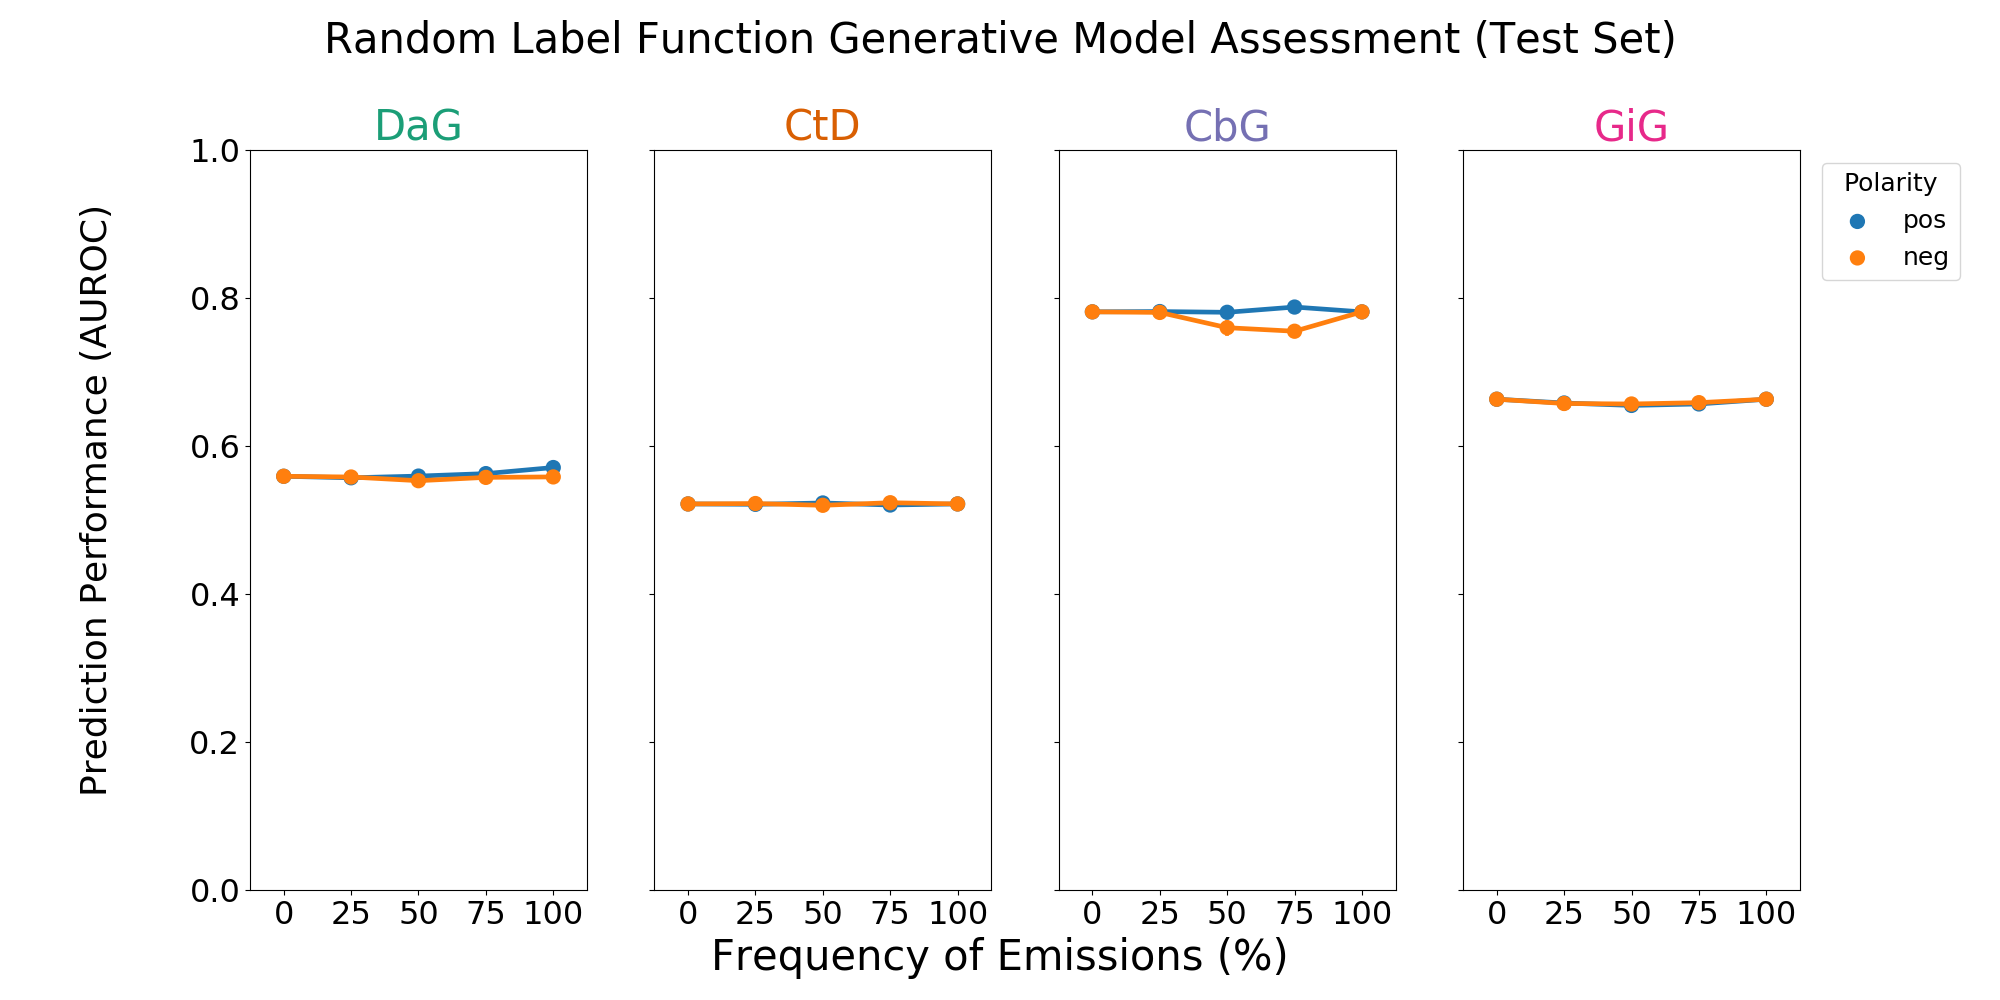 Figure 3: A grid of AUROC (A) scores for each edge type. Each plot consists of adding a single label function on top of the baseline model. This label function emits a positive (shown in blue) or negative (shown in orange) label at specified frequencies, and performance at zero is equivalent to not having a randomly emitting label function. The error bars represent 95% confidence intervals for AUROC or AUPR (y-axis) at each emission frequency.